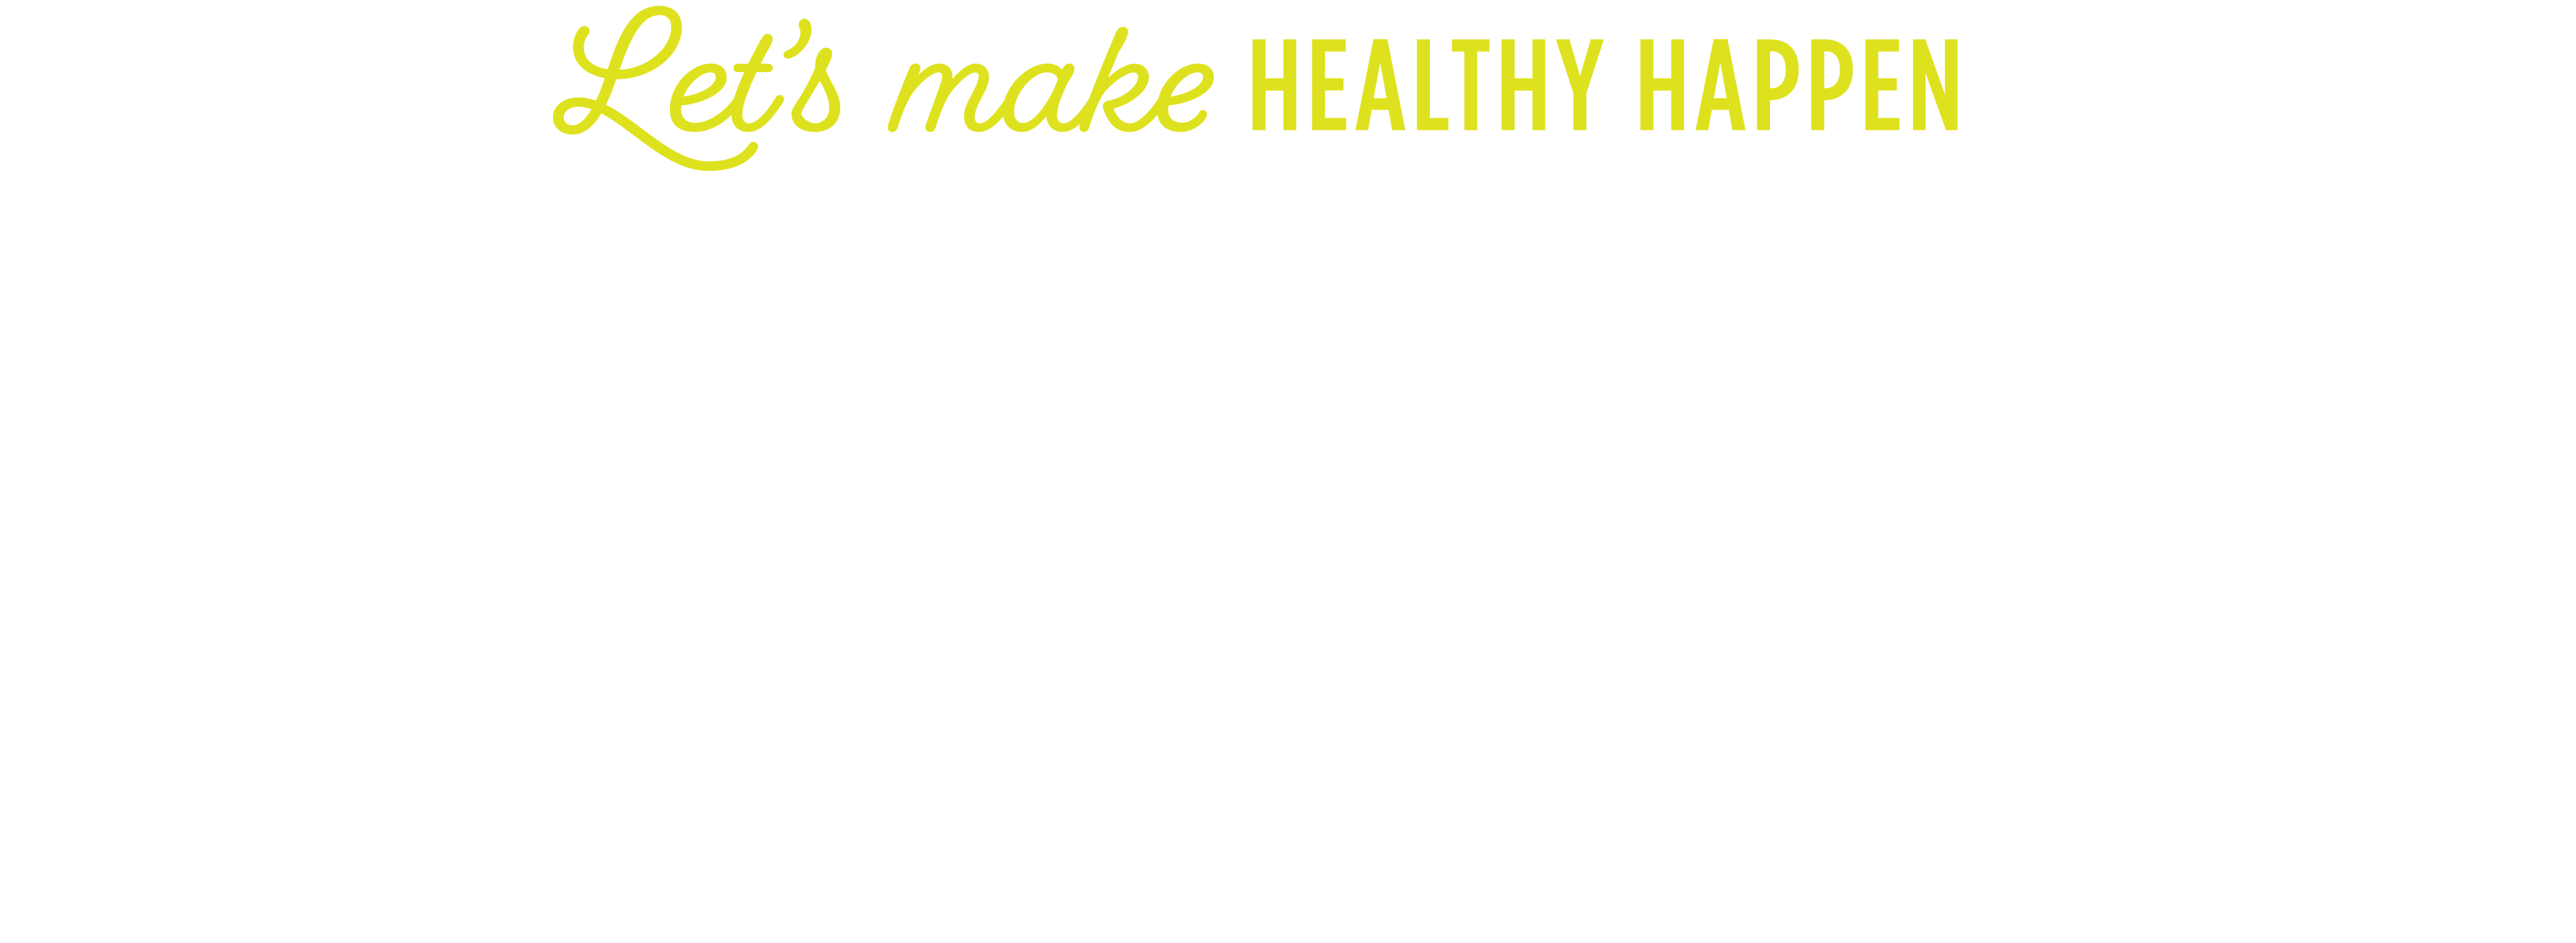 Let's Make Healthy Happen 21-Day Transformation